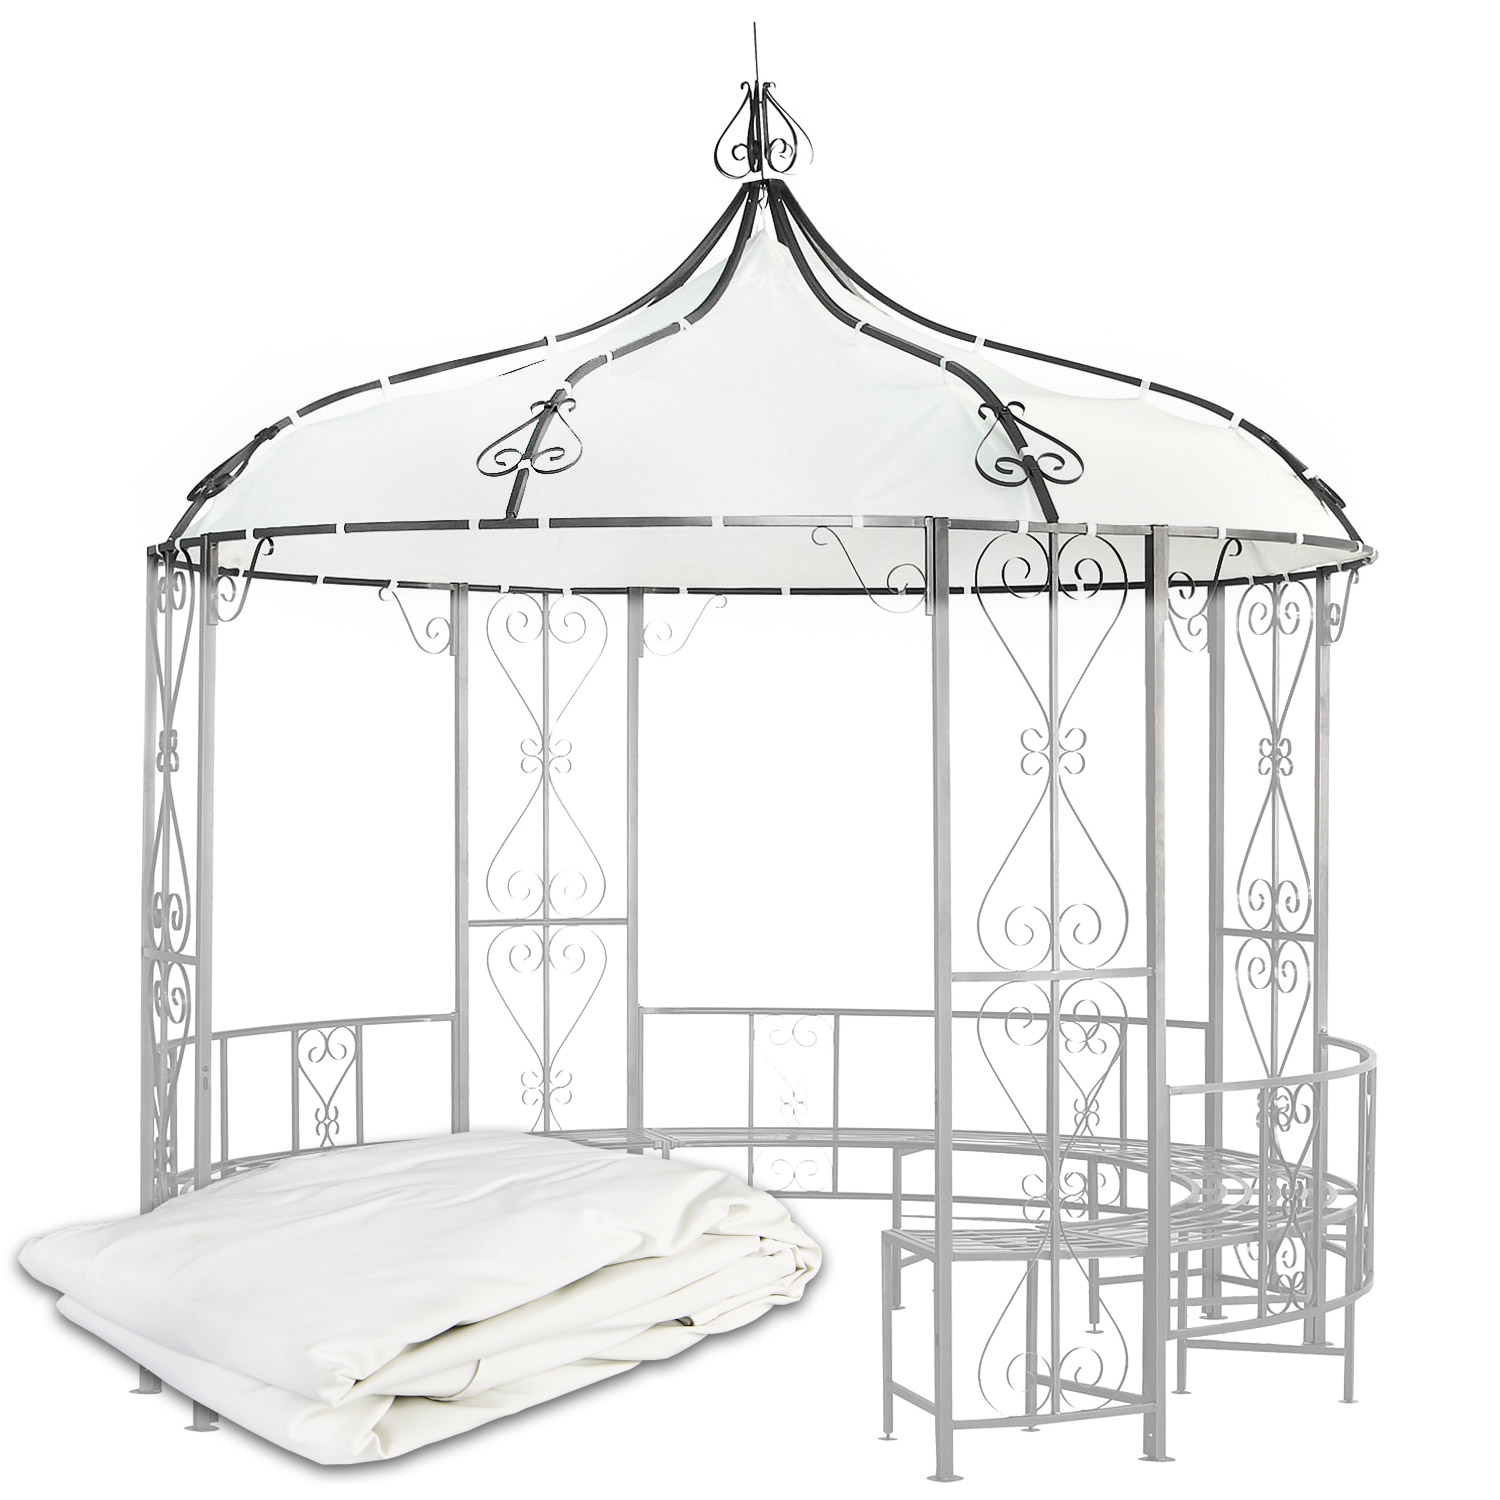 ersatzdach 3 m gazebo pavillon pavillion dach pavilion. Black Bedroom Furniture Sets. Home Design Ideas